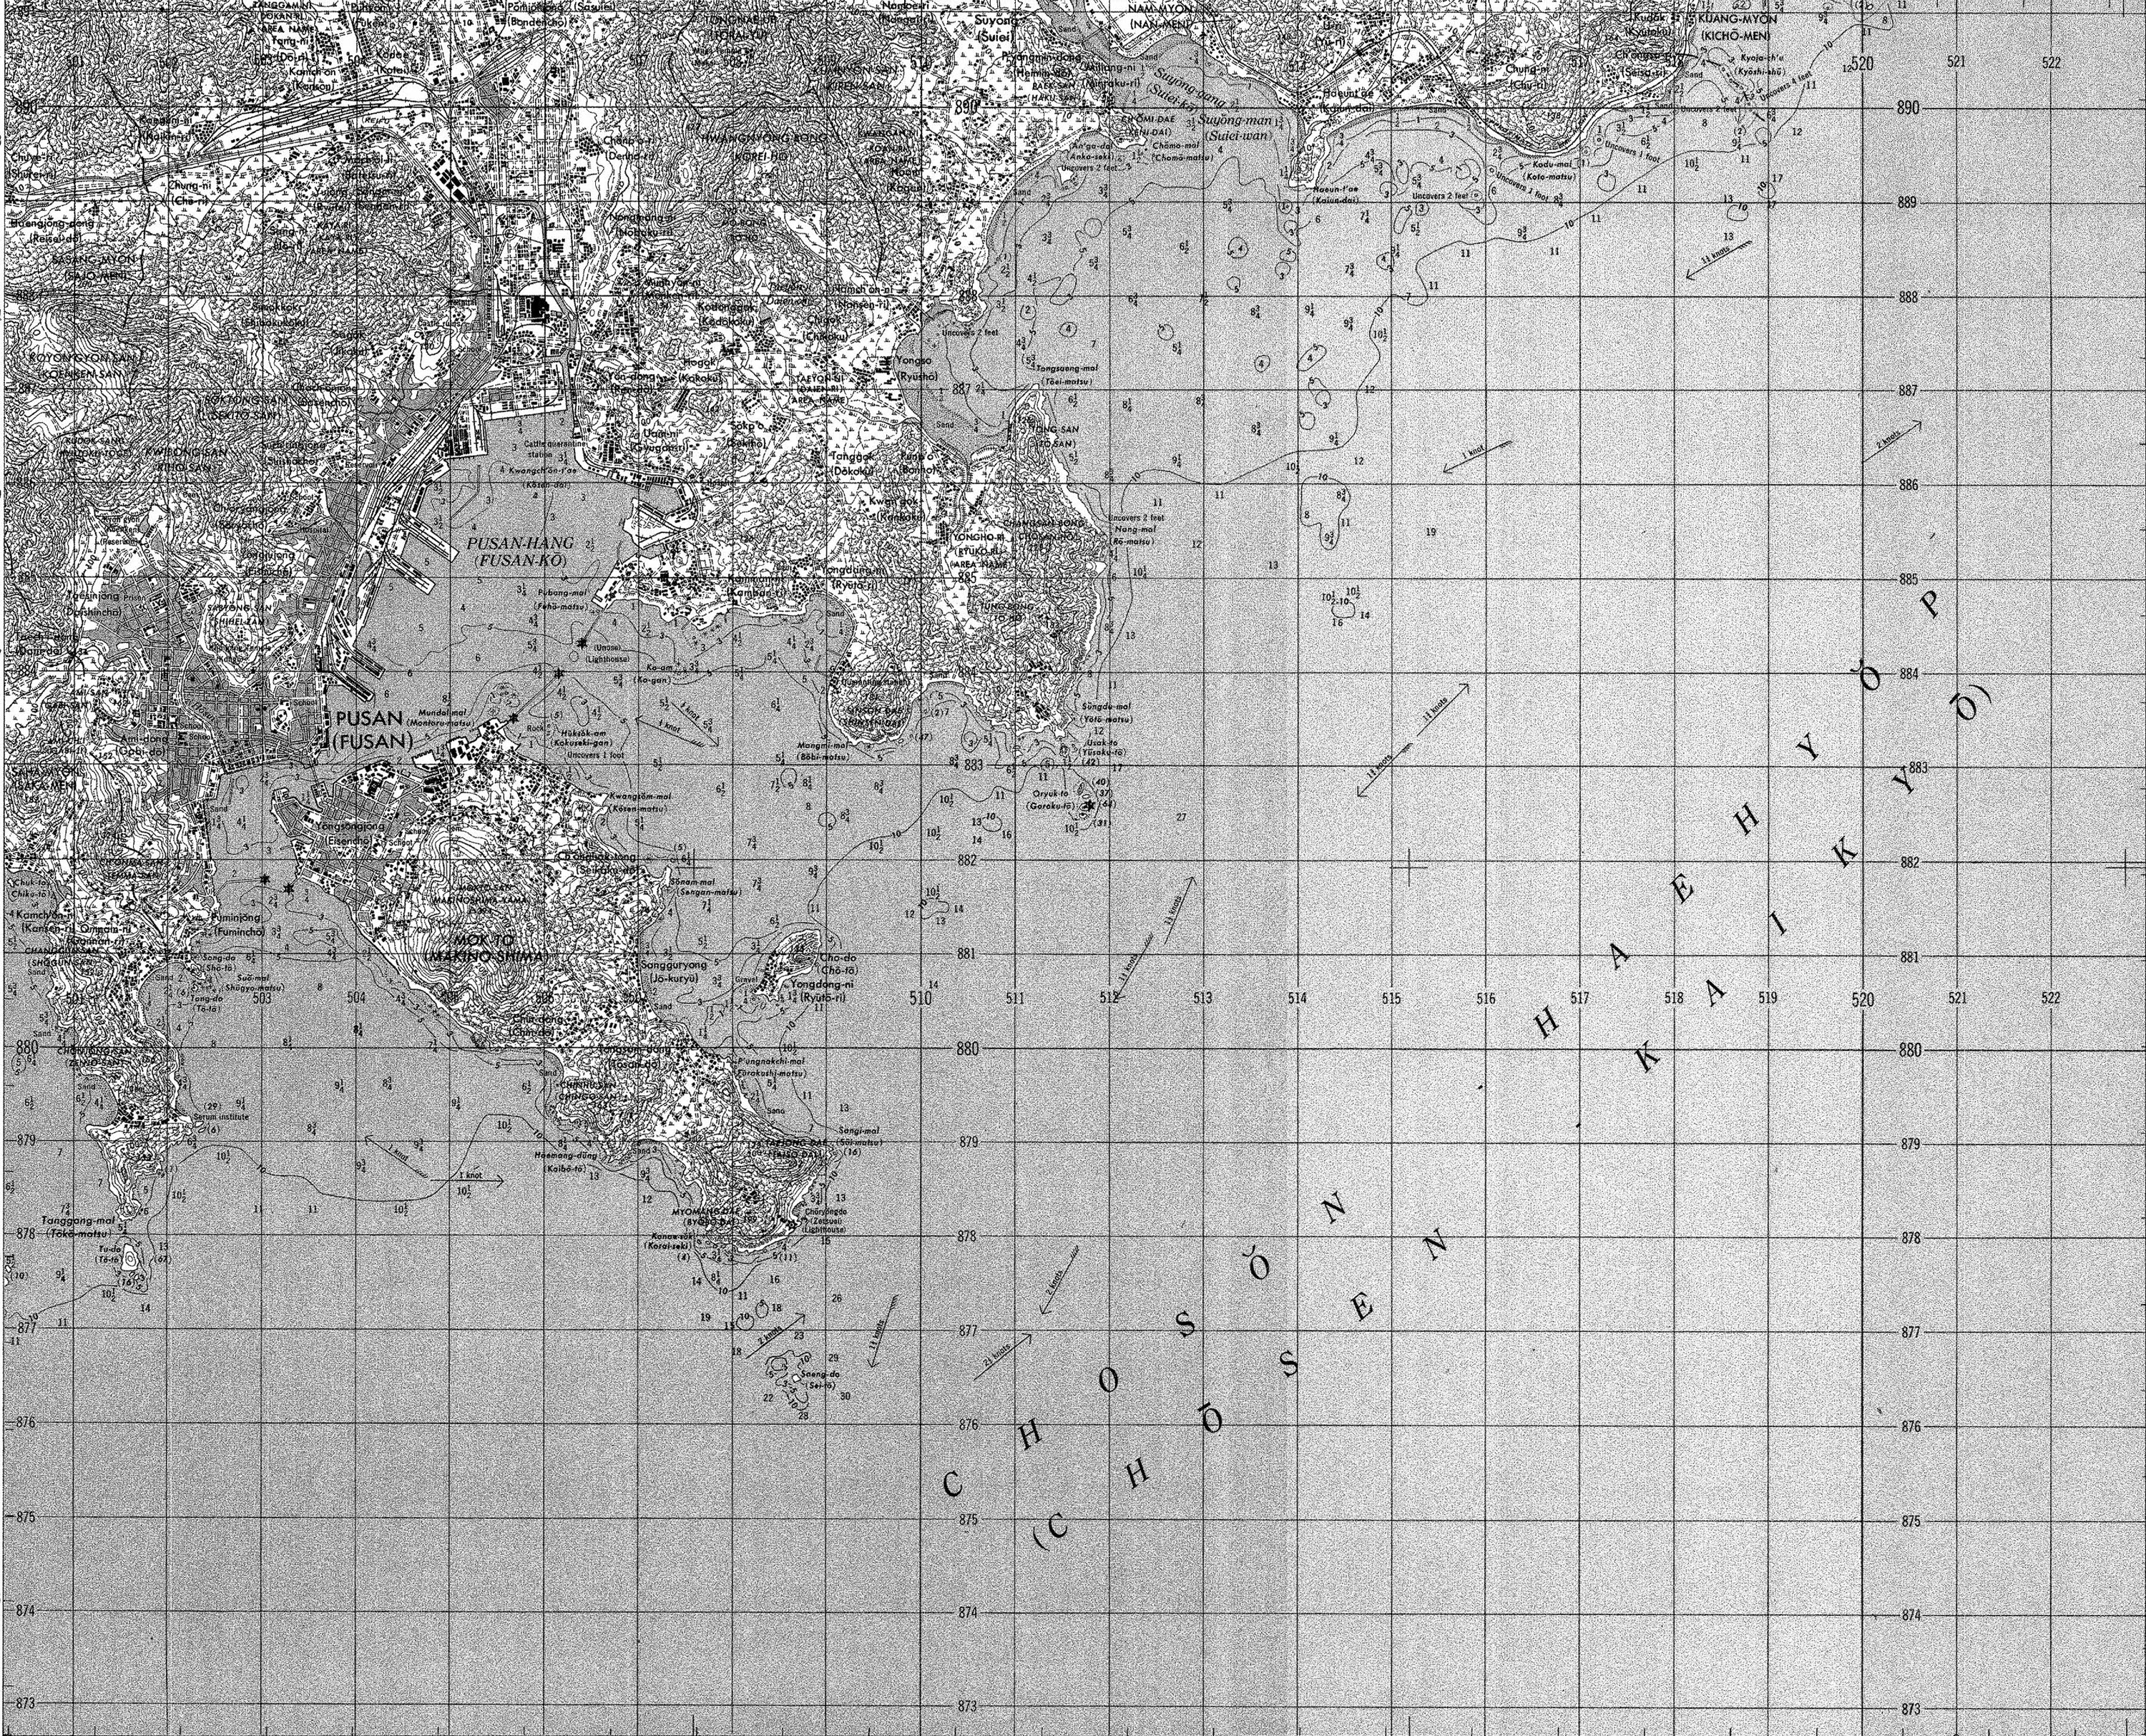 Korean War Project Map - PUSAN - L751 - 7019 III